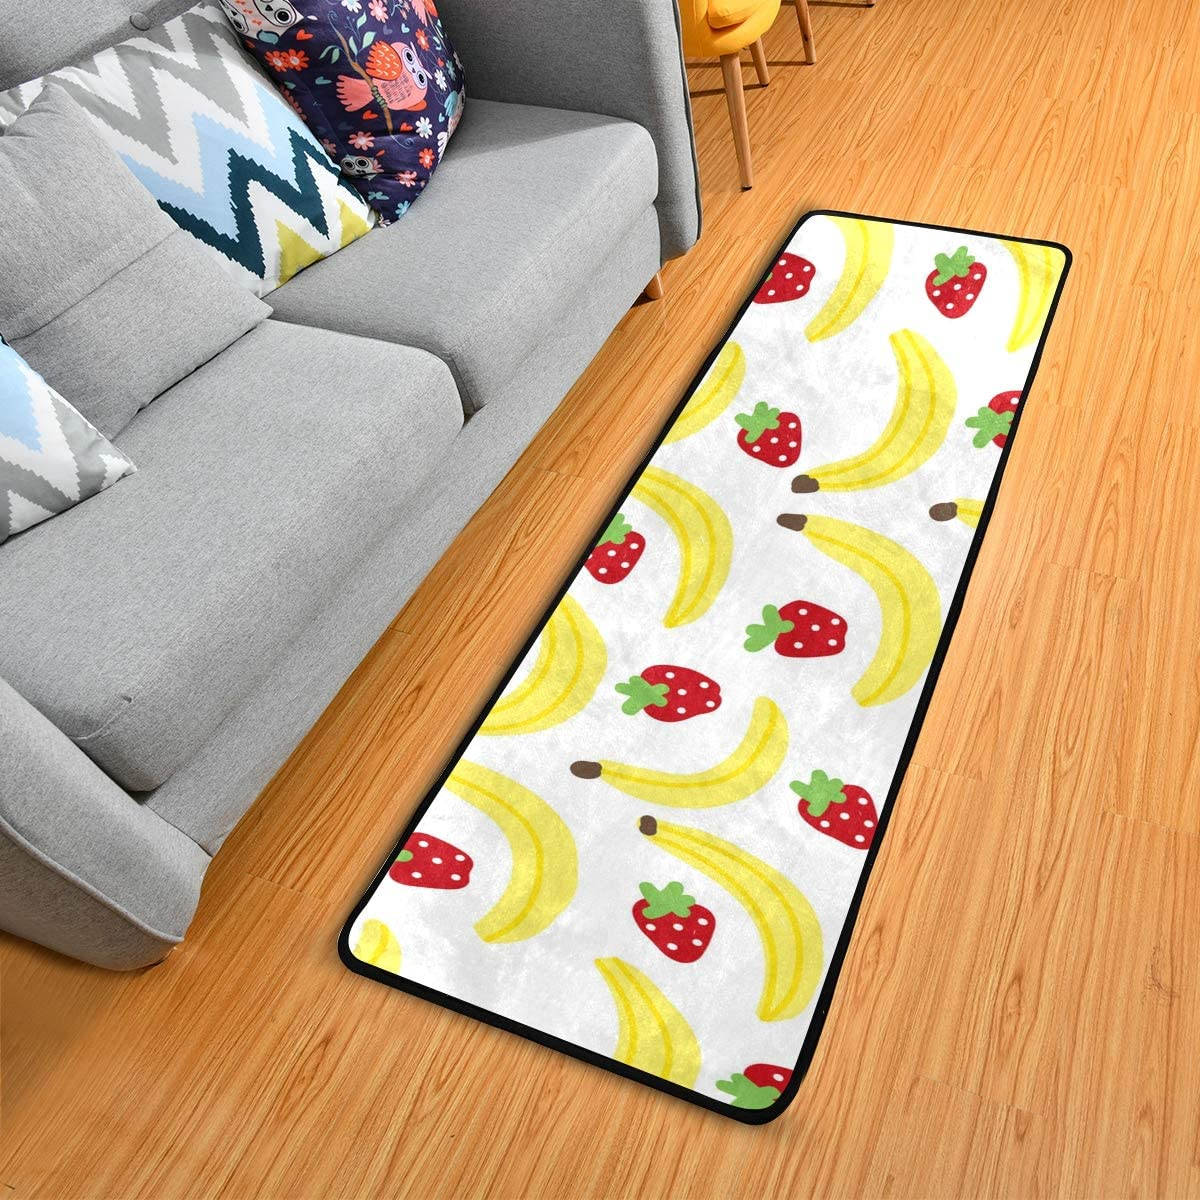 Kitchen Rugs Non-Slip Soft Doormats Banana And Strawberry Large Bath Mat Carpet Area Rugs for Living Room Bedroom Rug 72